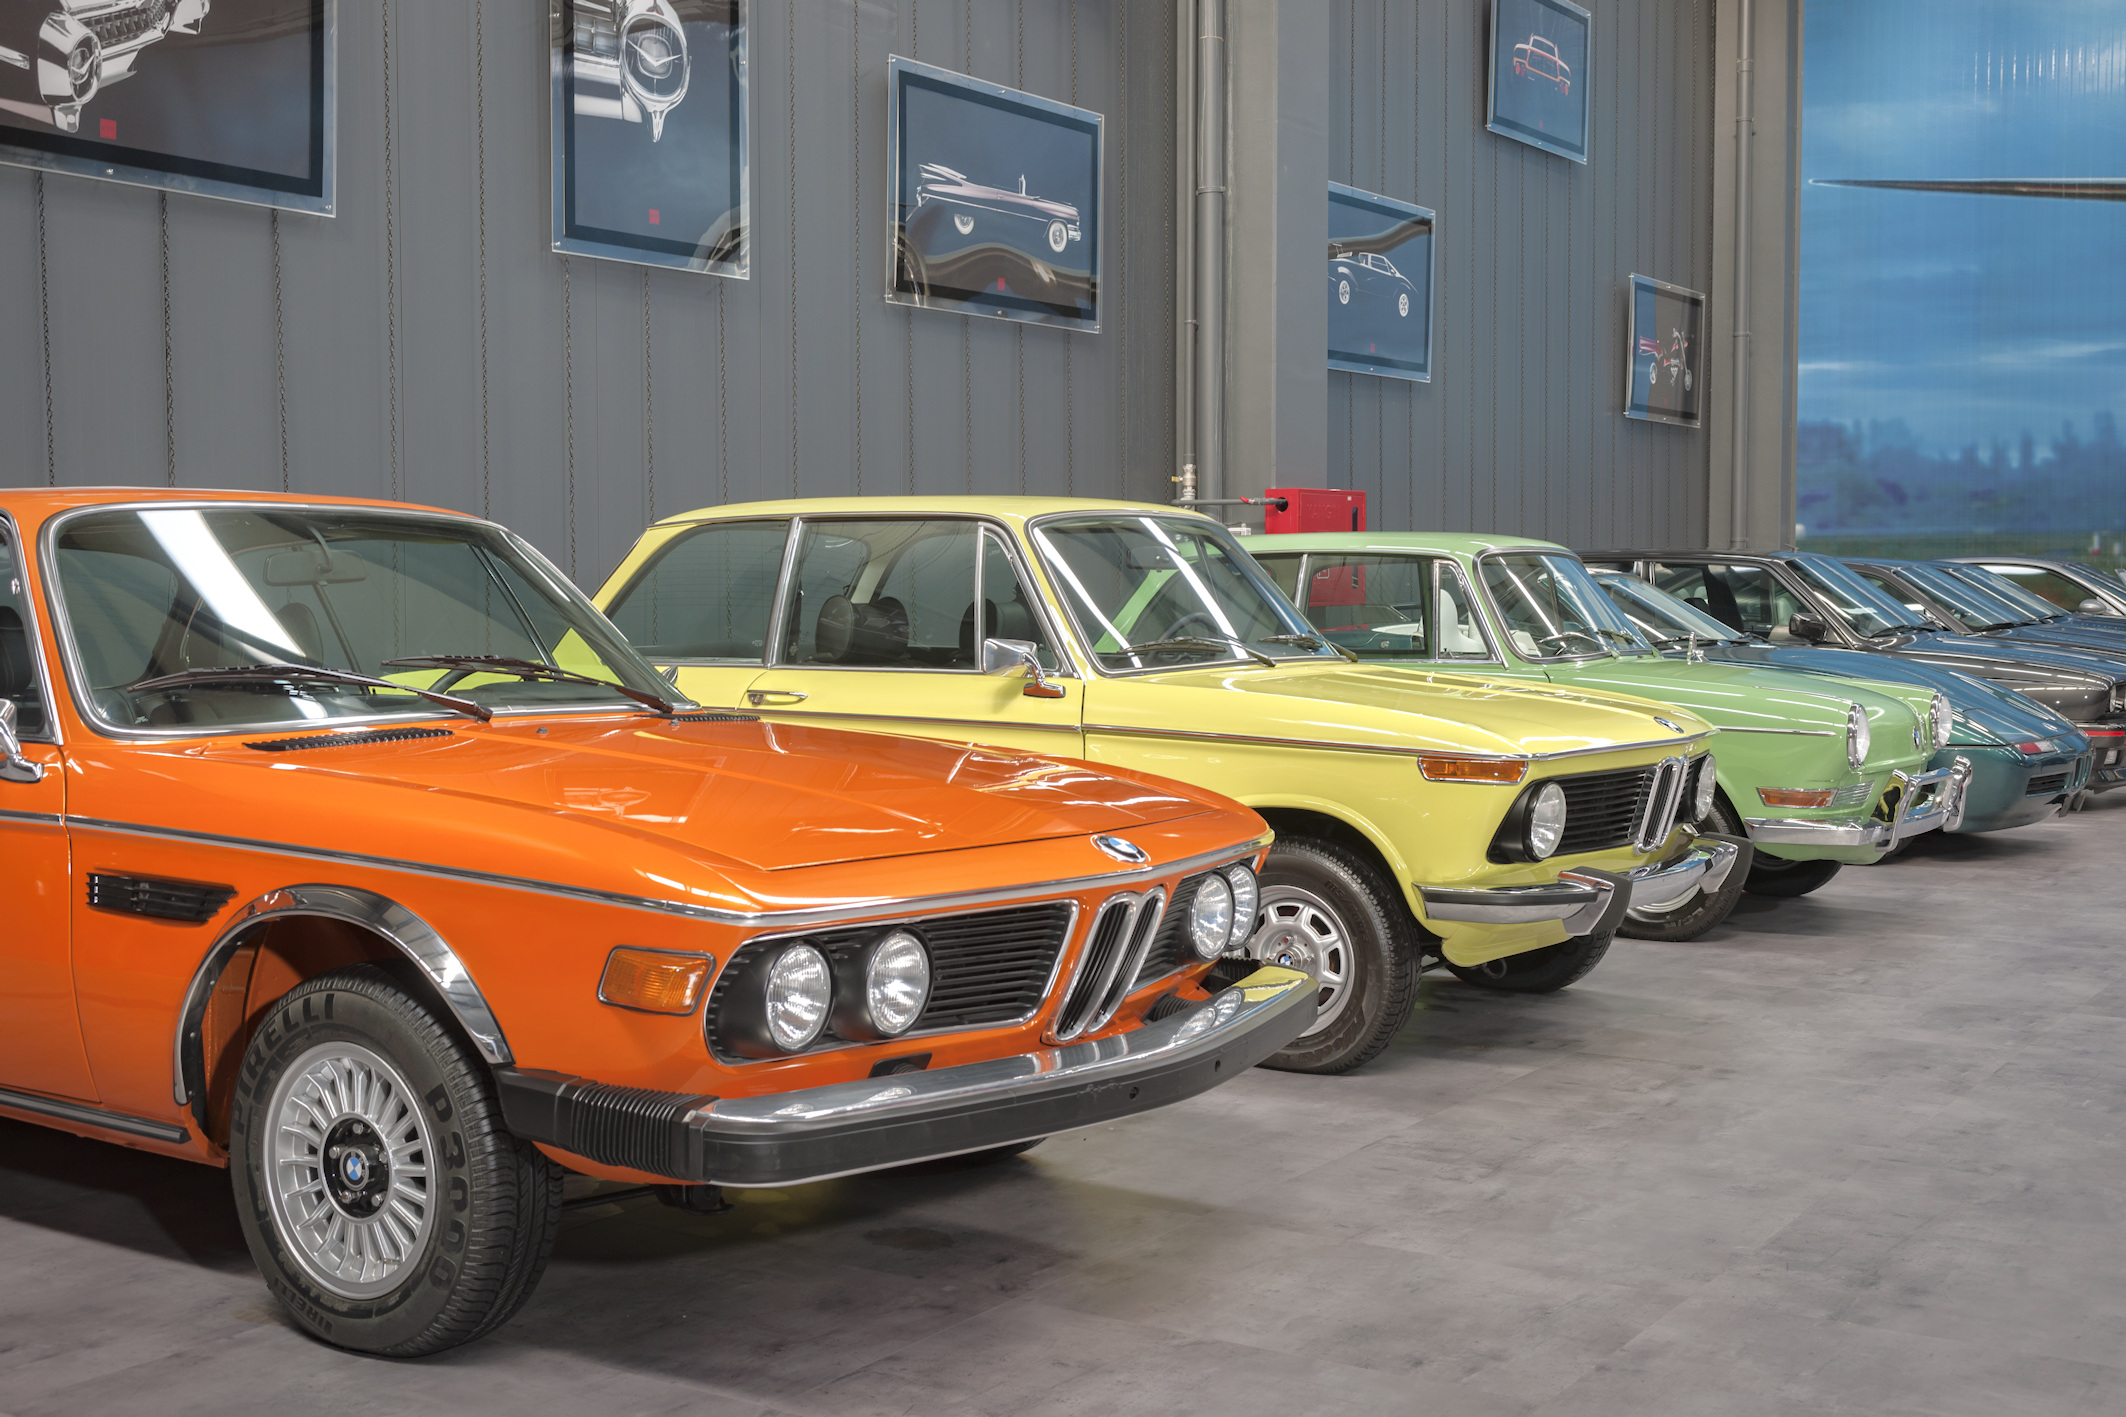 sx-bmws-in-key-museum